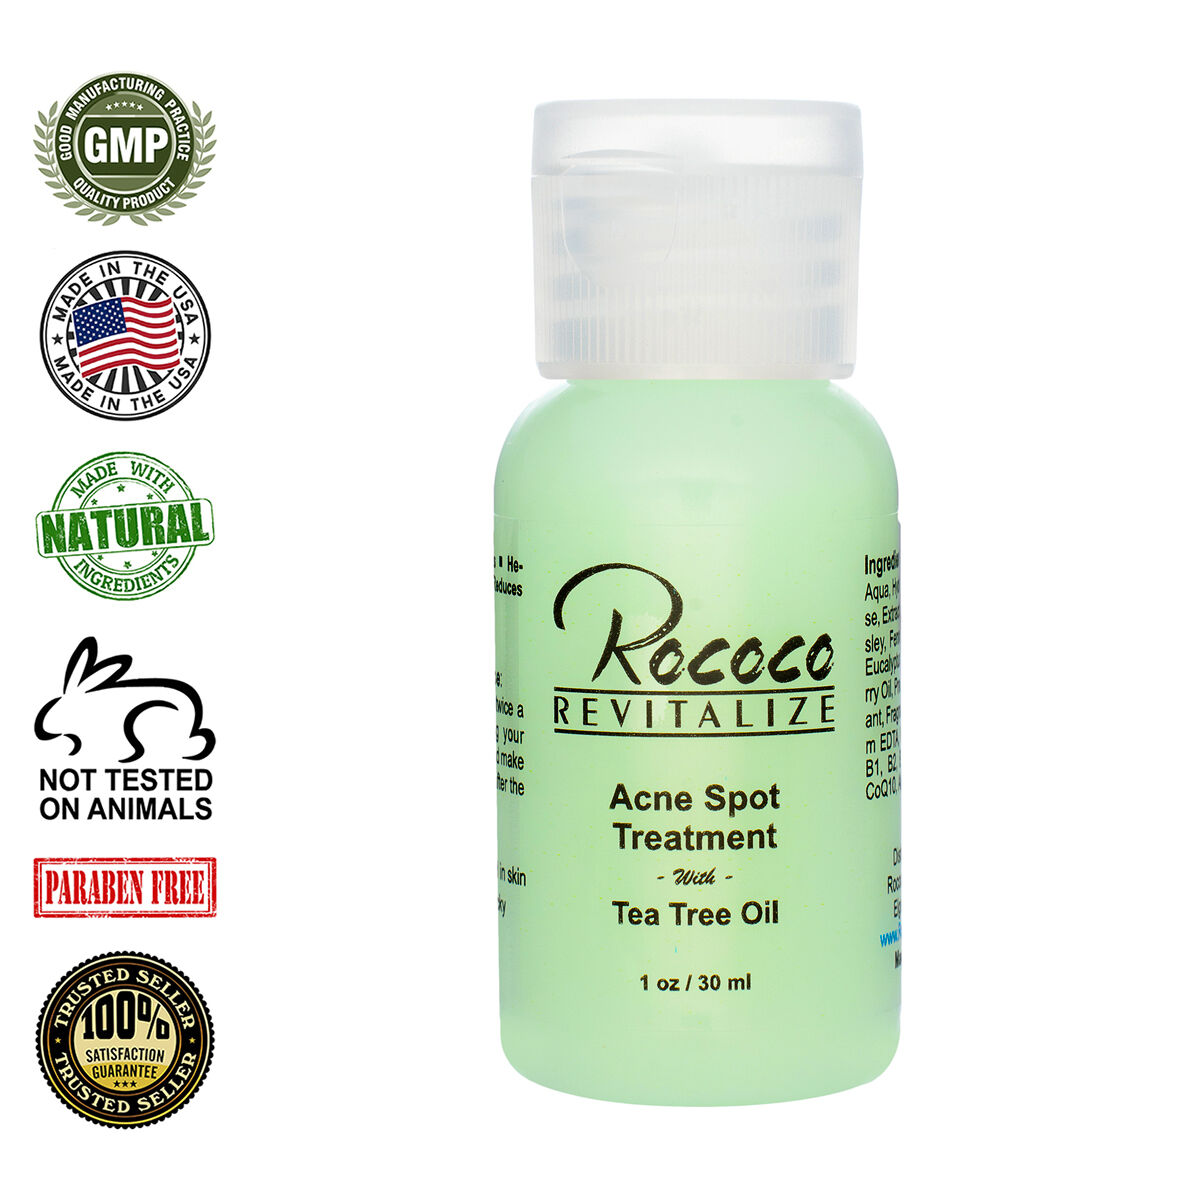 All Natural Acne Spot Treatment With Tea Tree Oil 1oz 30 Ml Ebay Acnes Clay Mask 50g Norton Secured Powered By Verisign